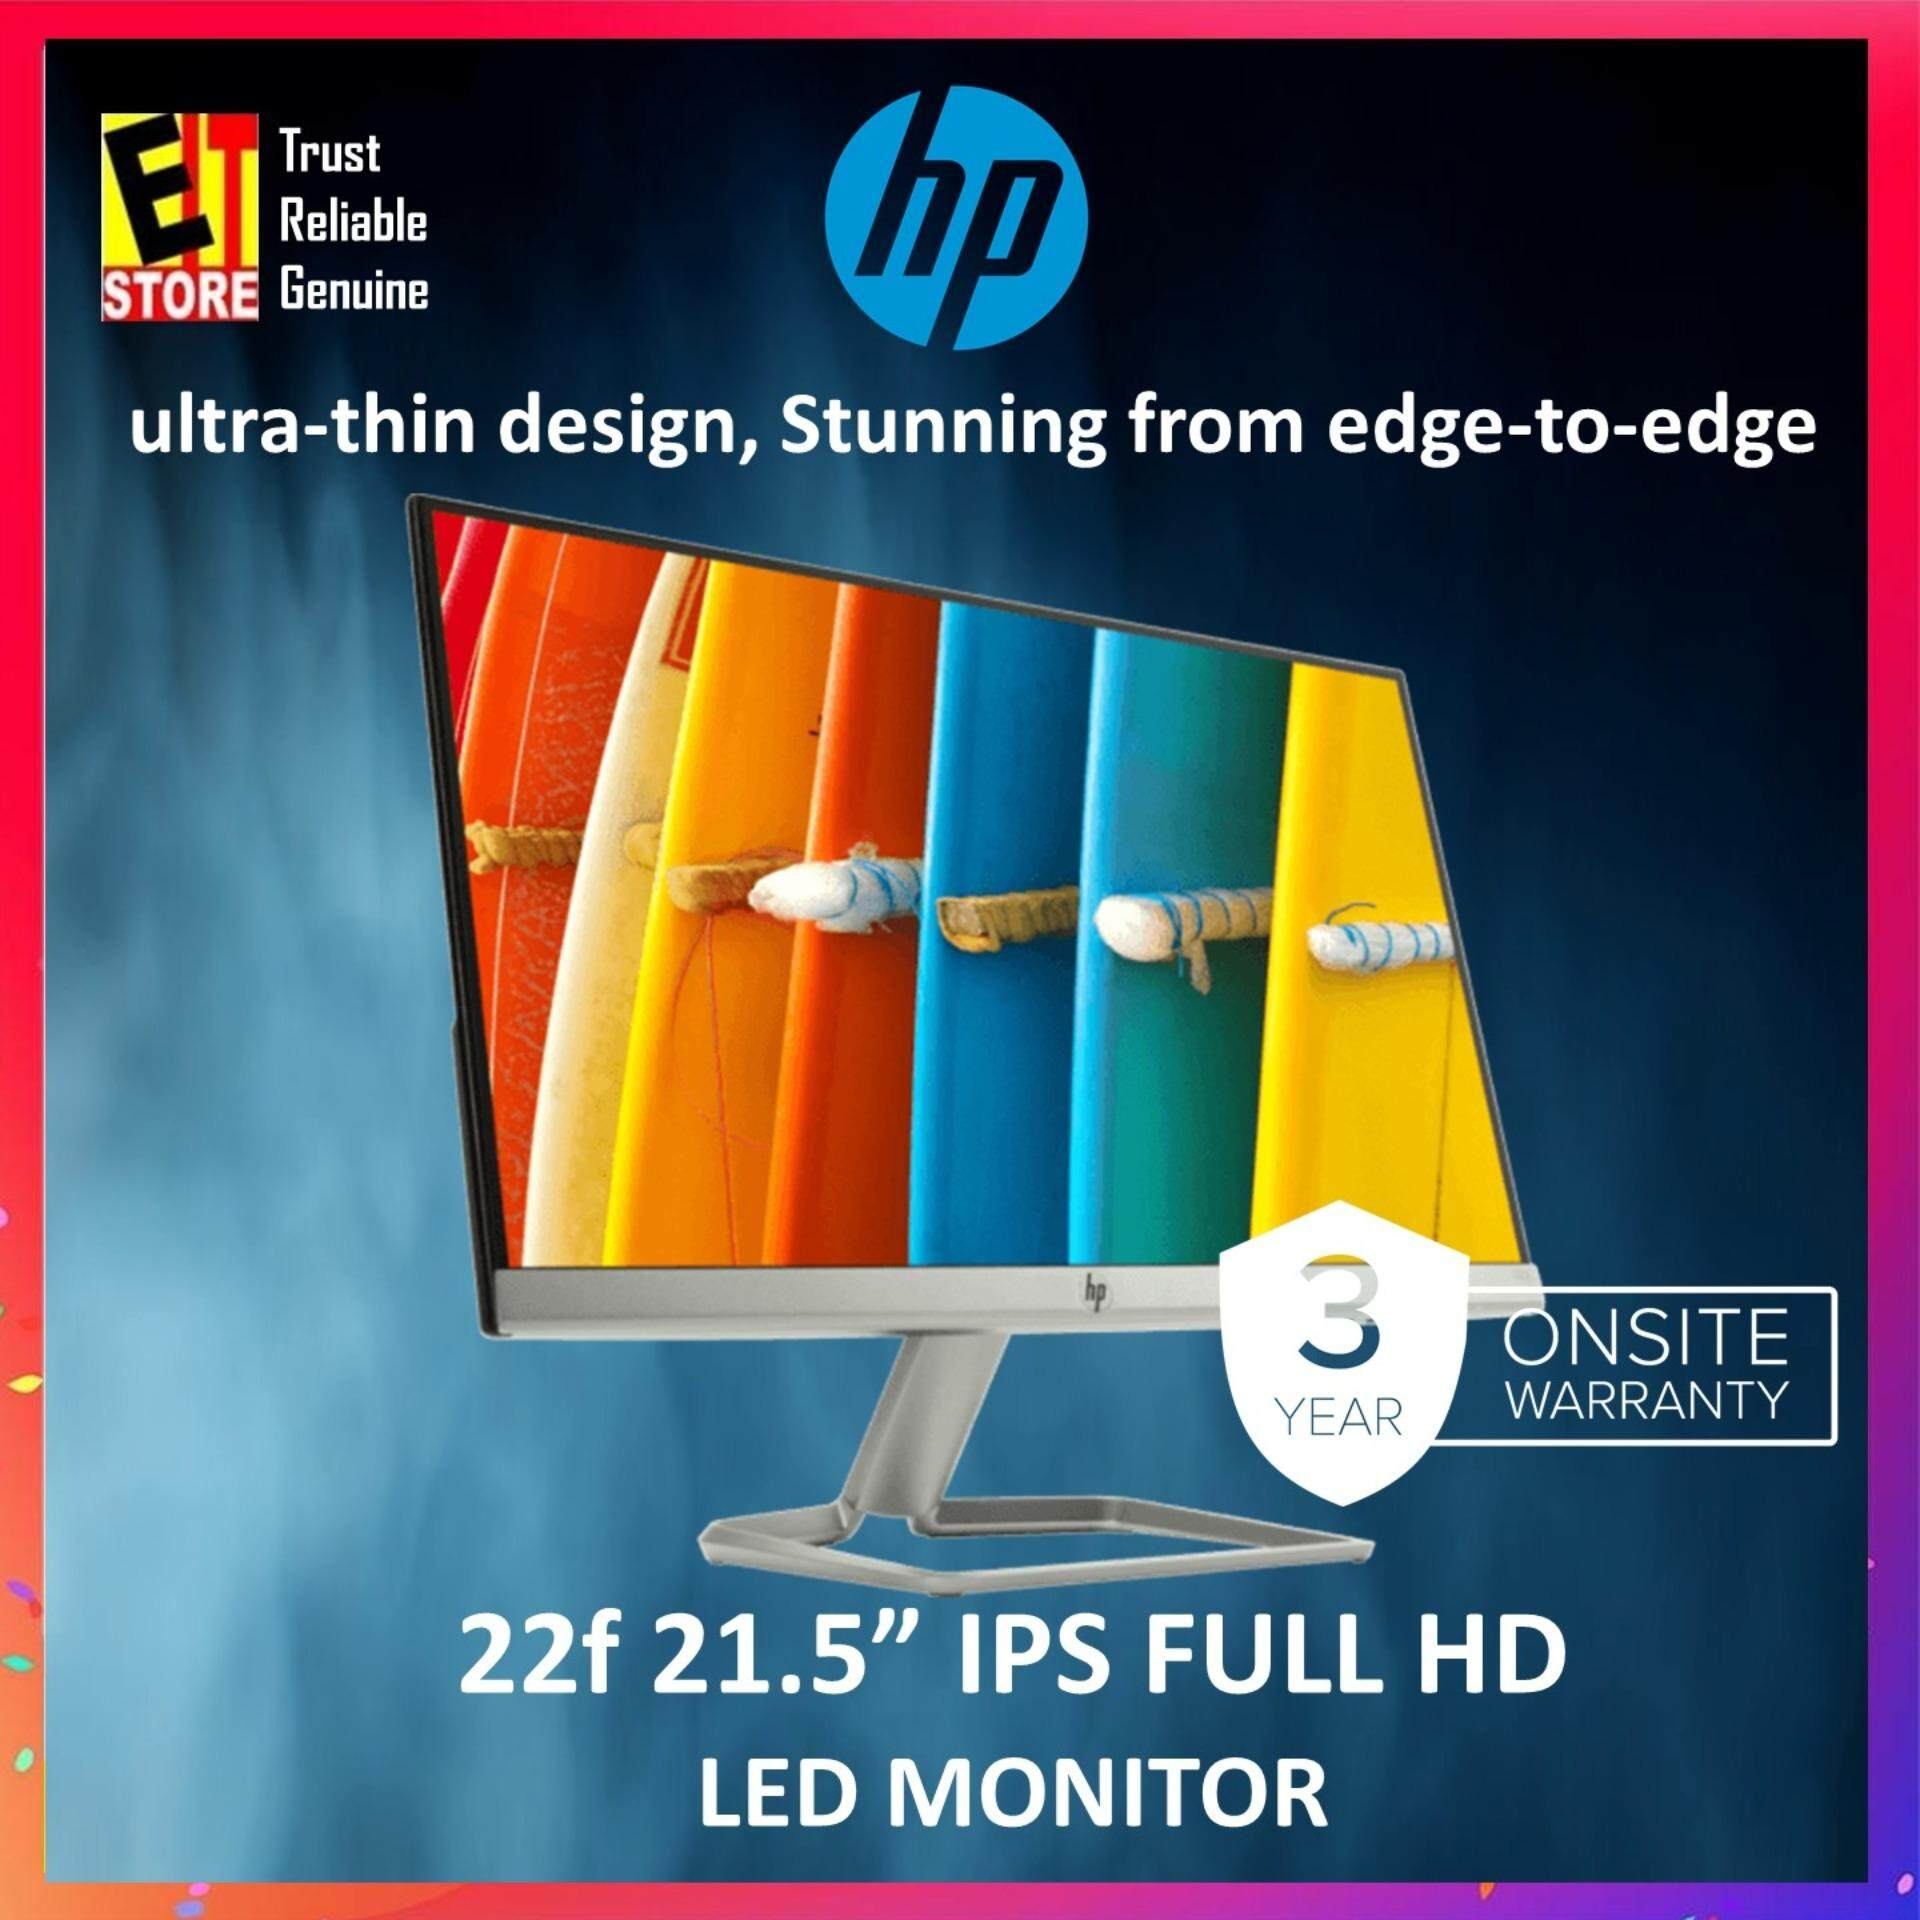 HP 22f 21.5-inch IPS LED BACKLIT MONITOR (3 YEARS ON-SITE) Malaysia